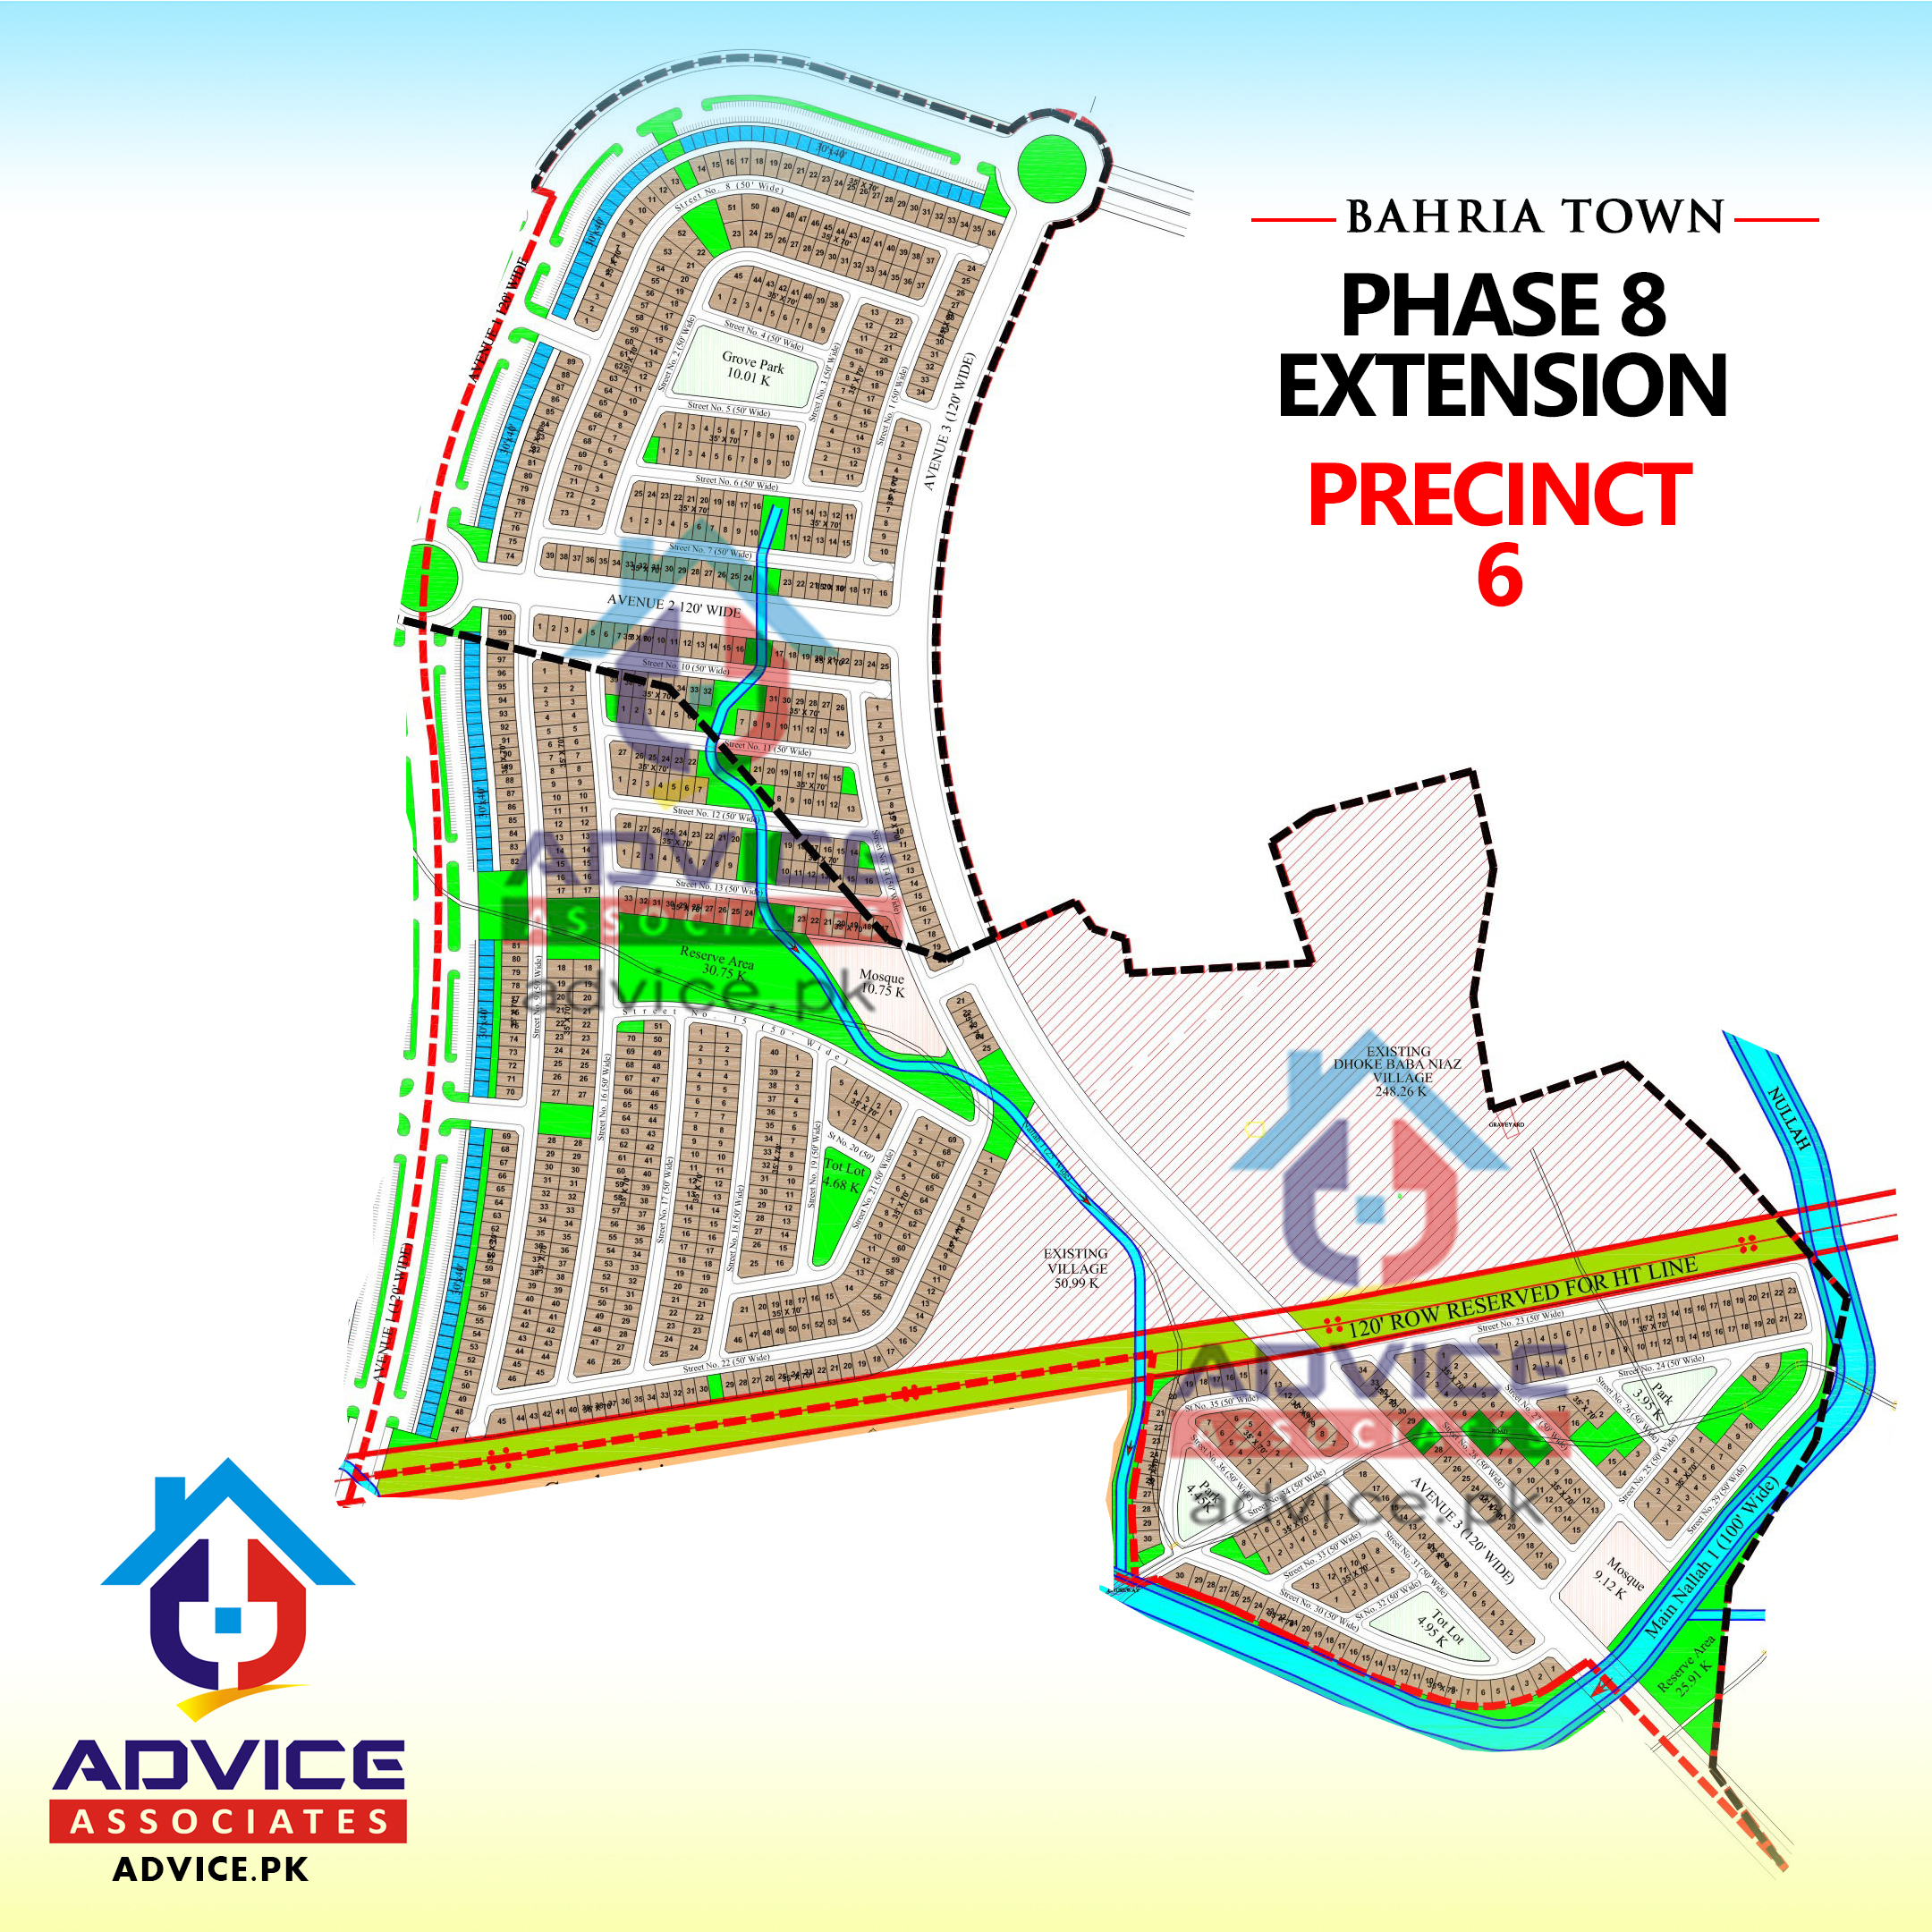 Bahria Town Phase 8 Ext Precinct 6 Map